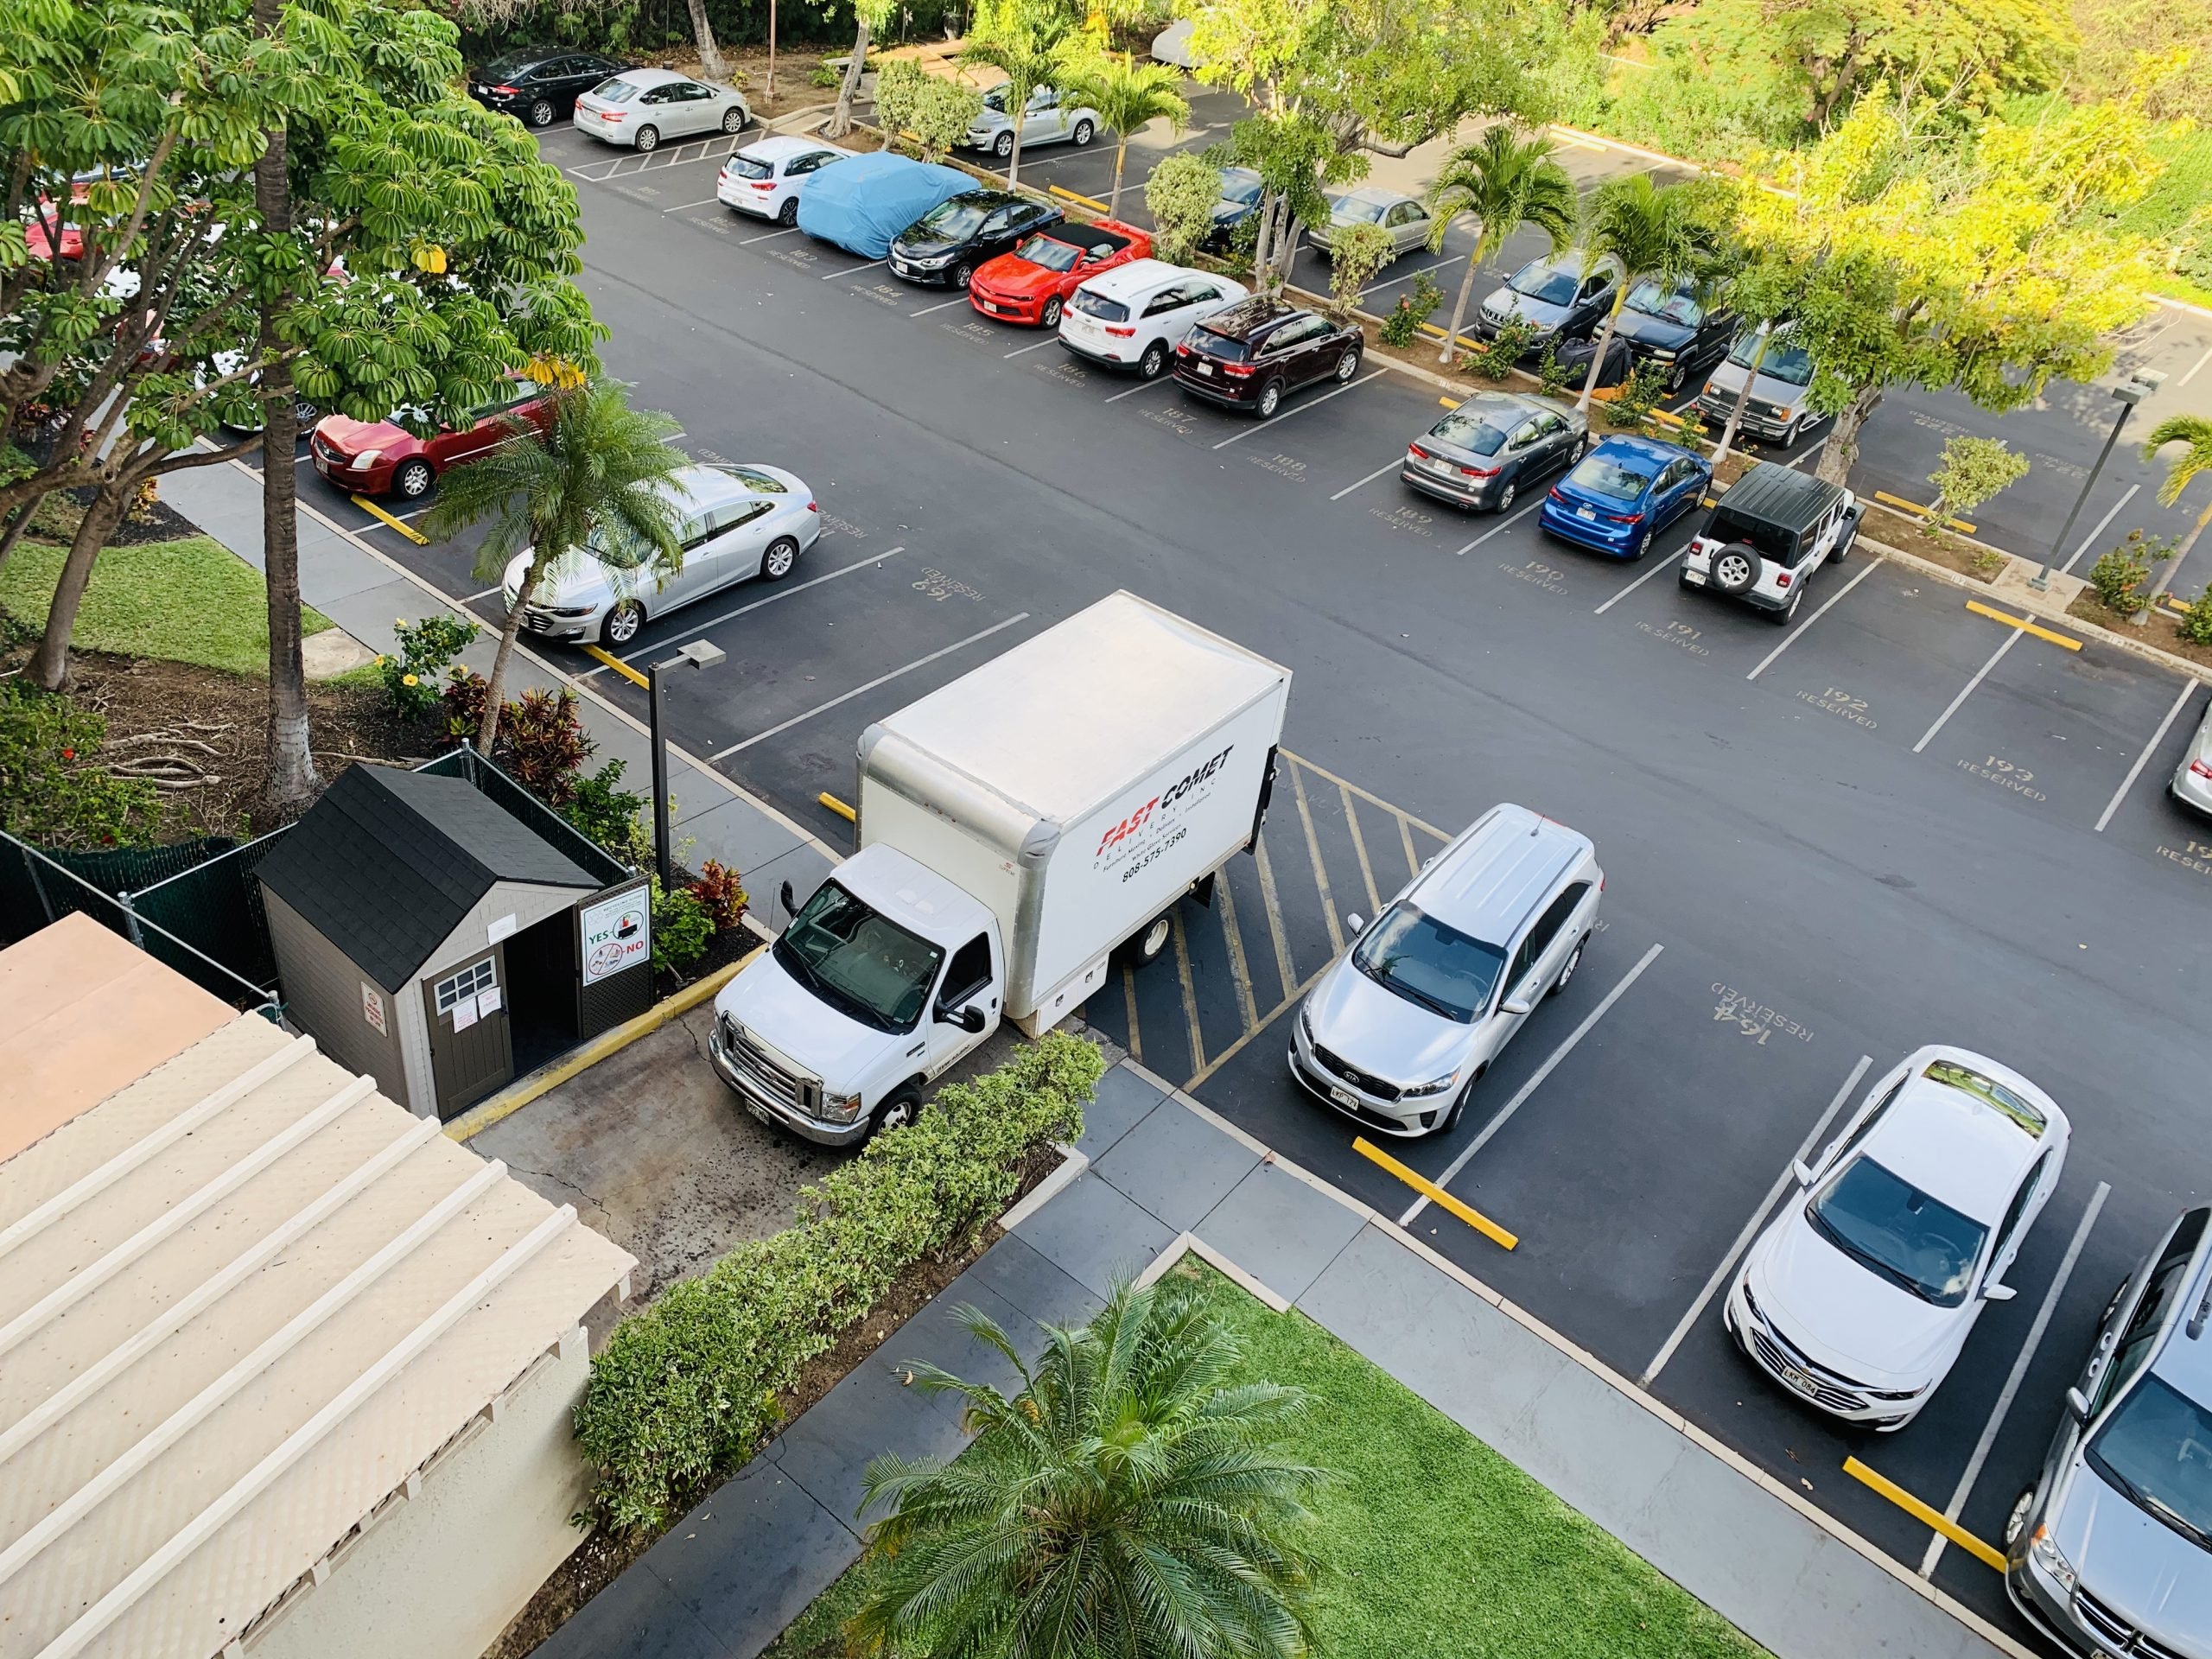 Fast Comet Delivery Truck 12 - Maui Hawaii